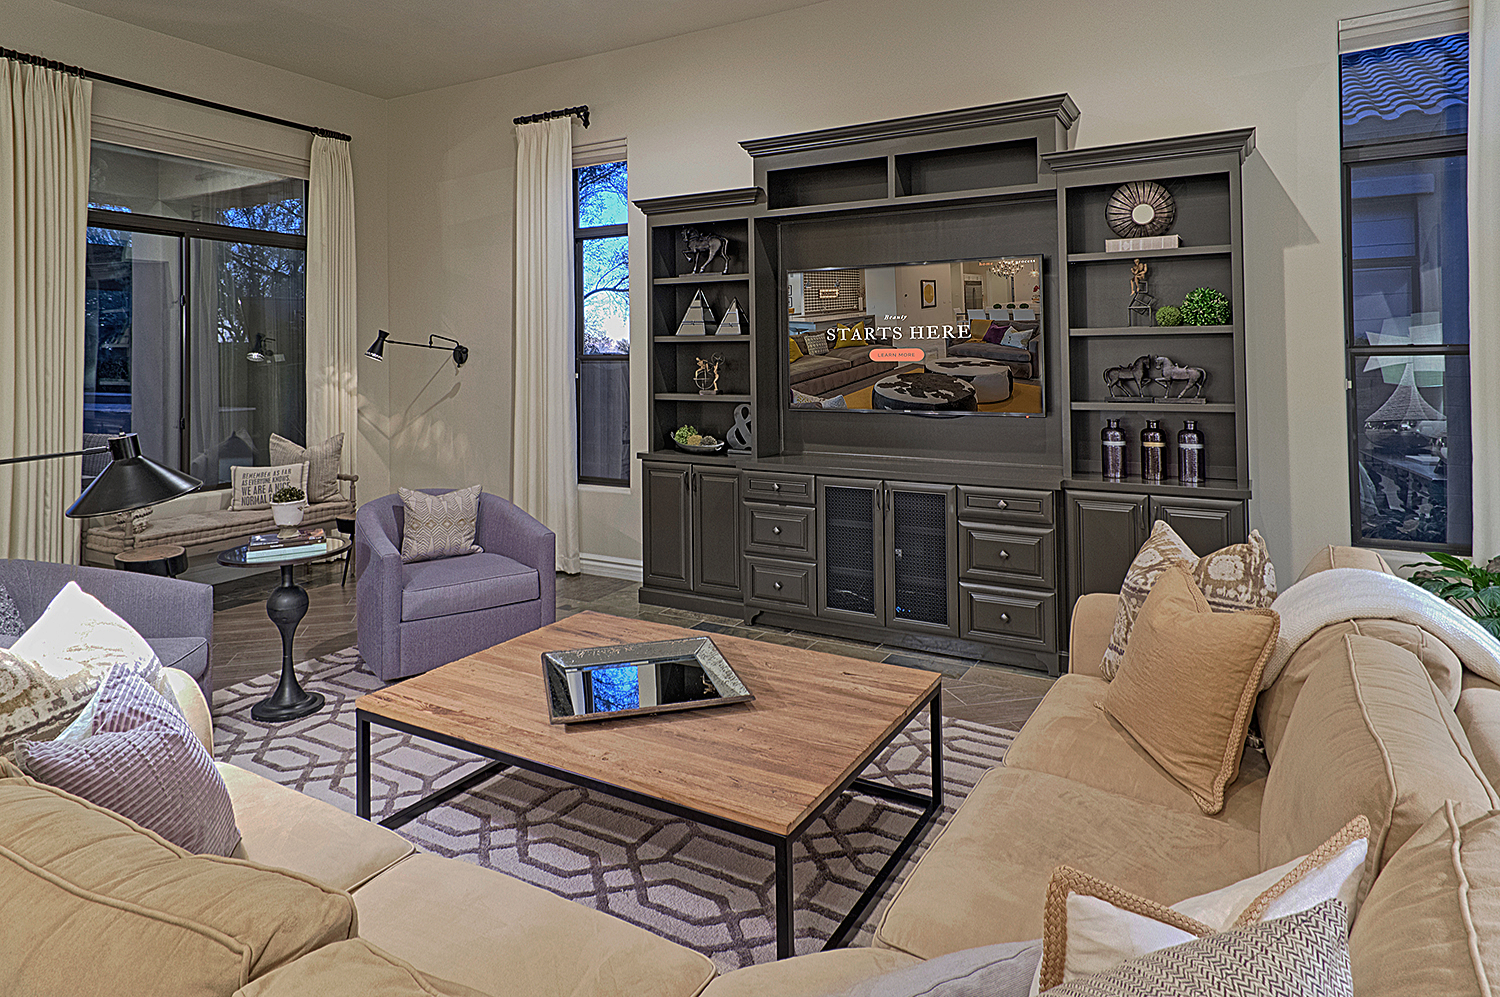 reThink Moody Eclectic Traditional - Scottsdale, AZ